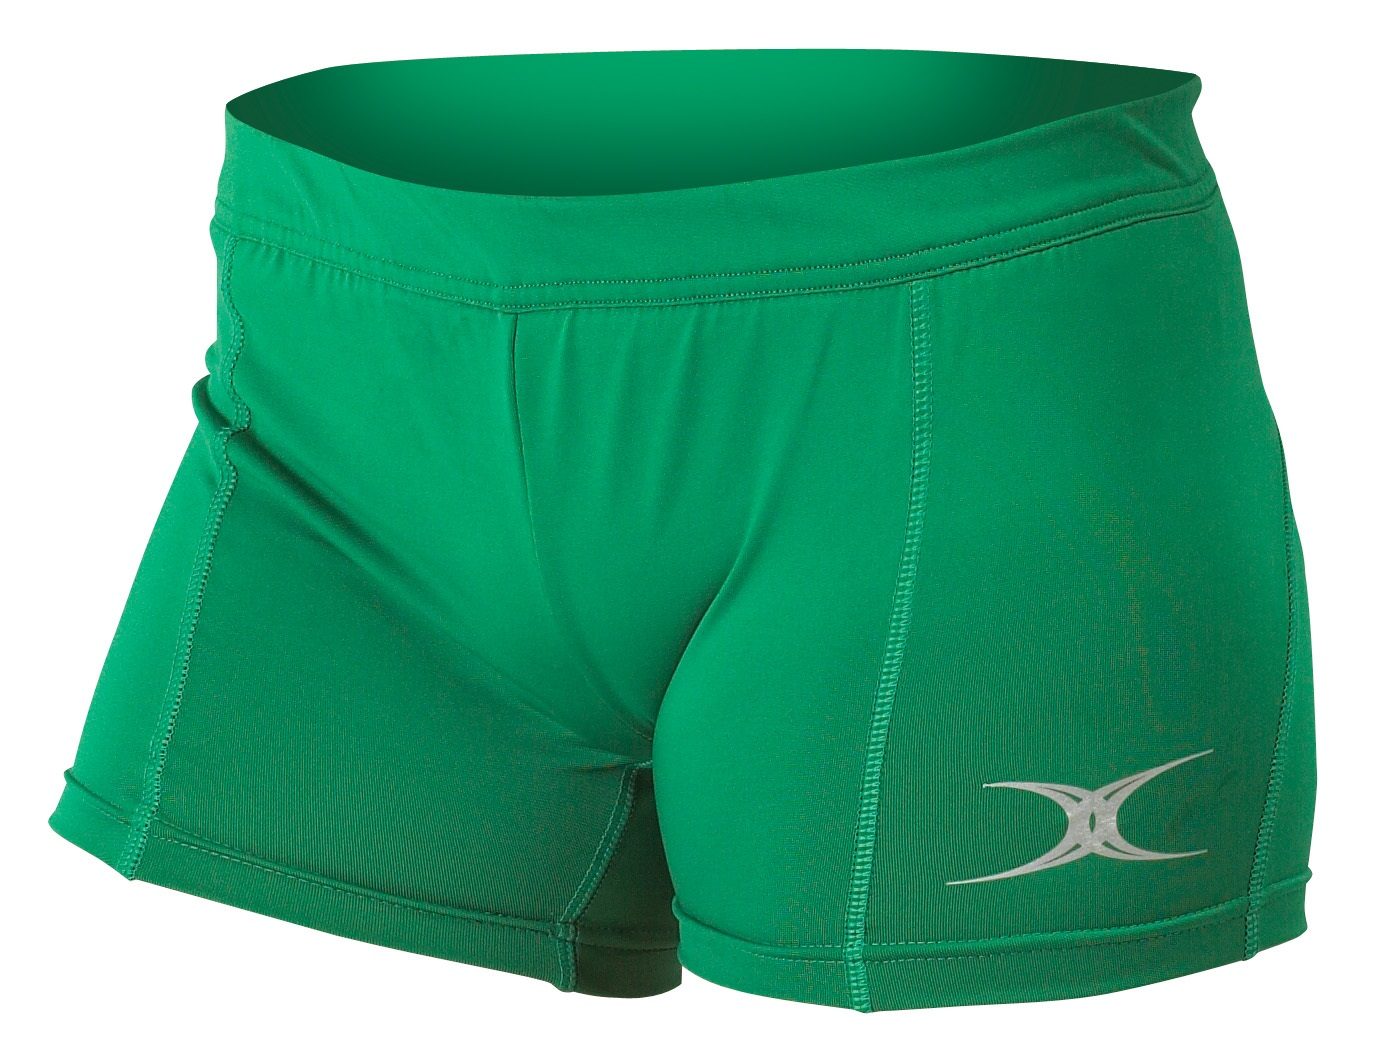 Portreath Gilbert Beach Shorts Ladies